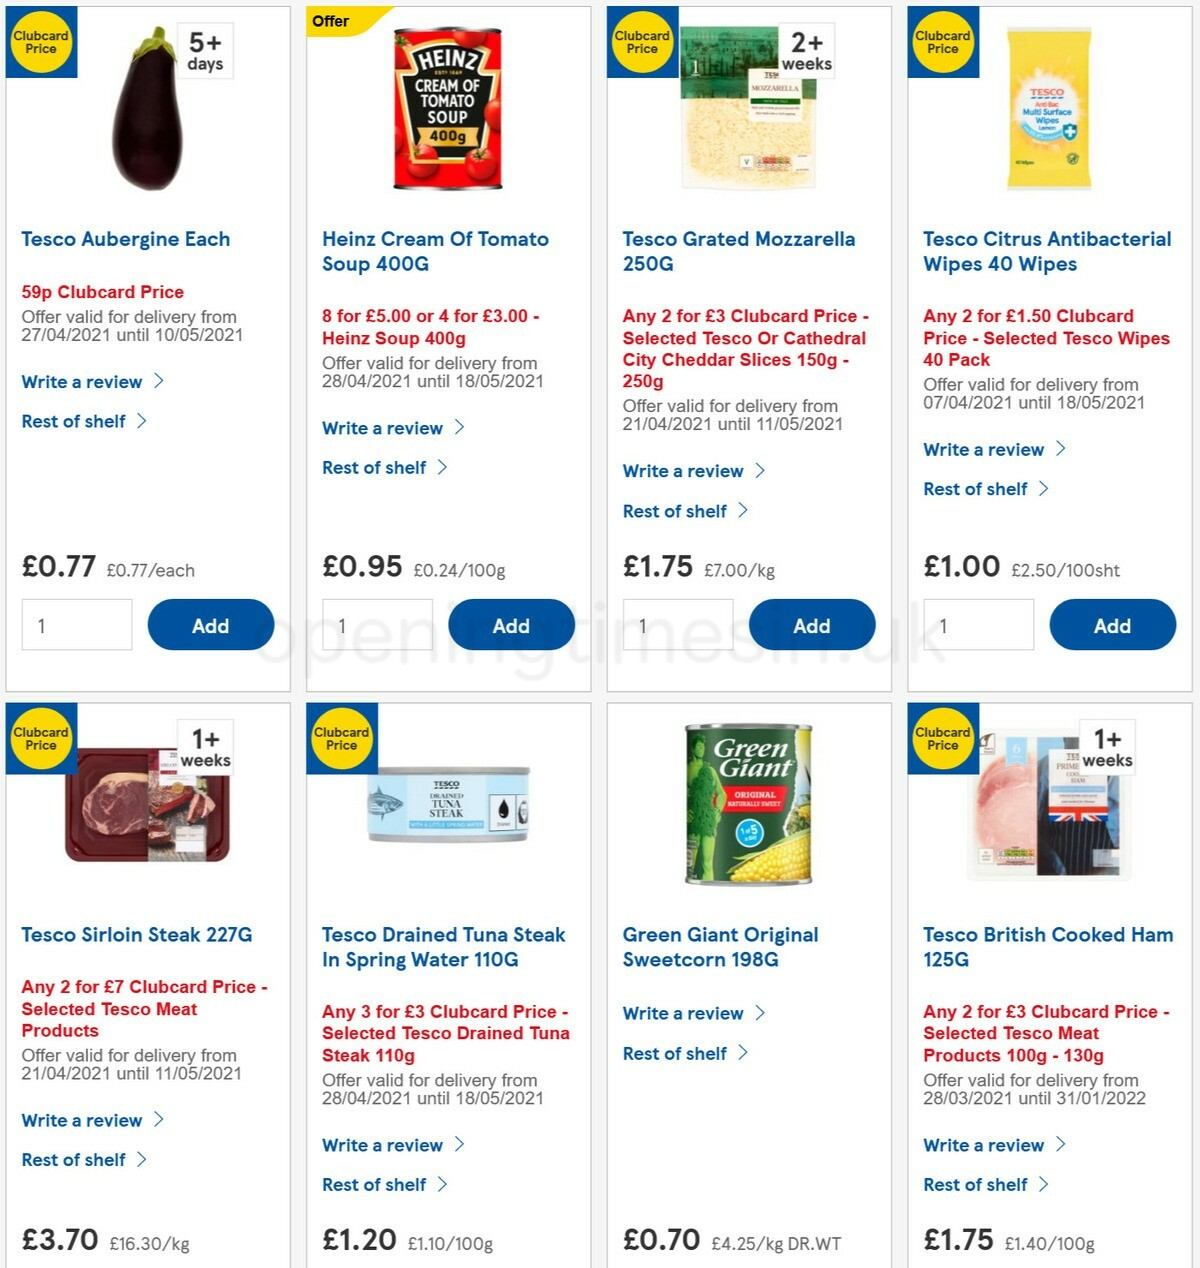 TESCO Offers from April 28